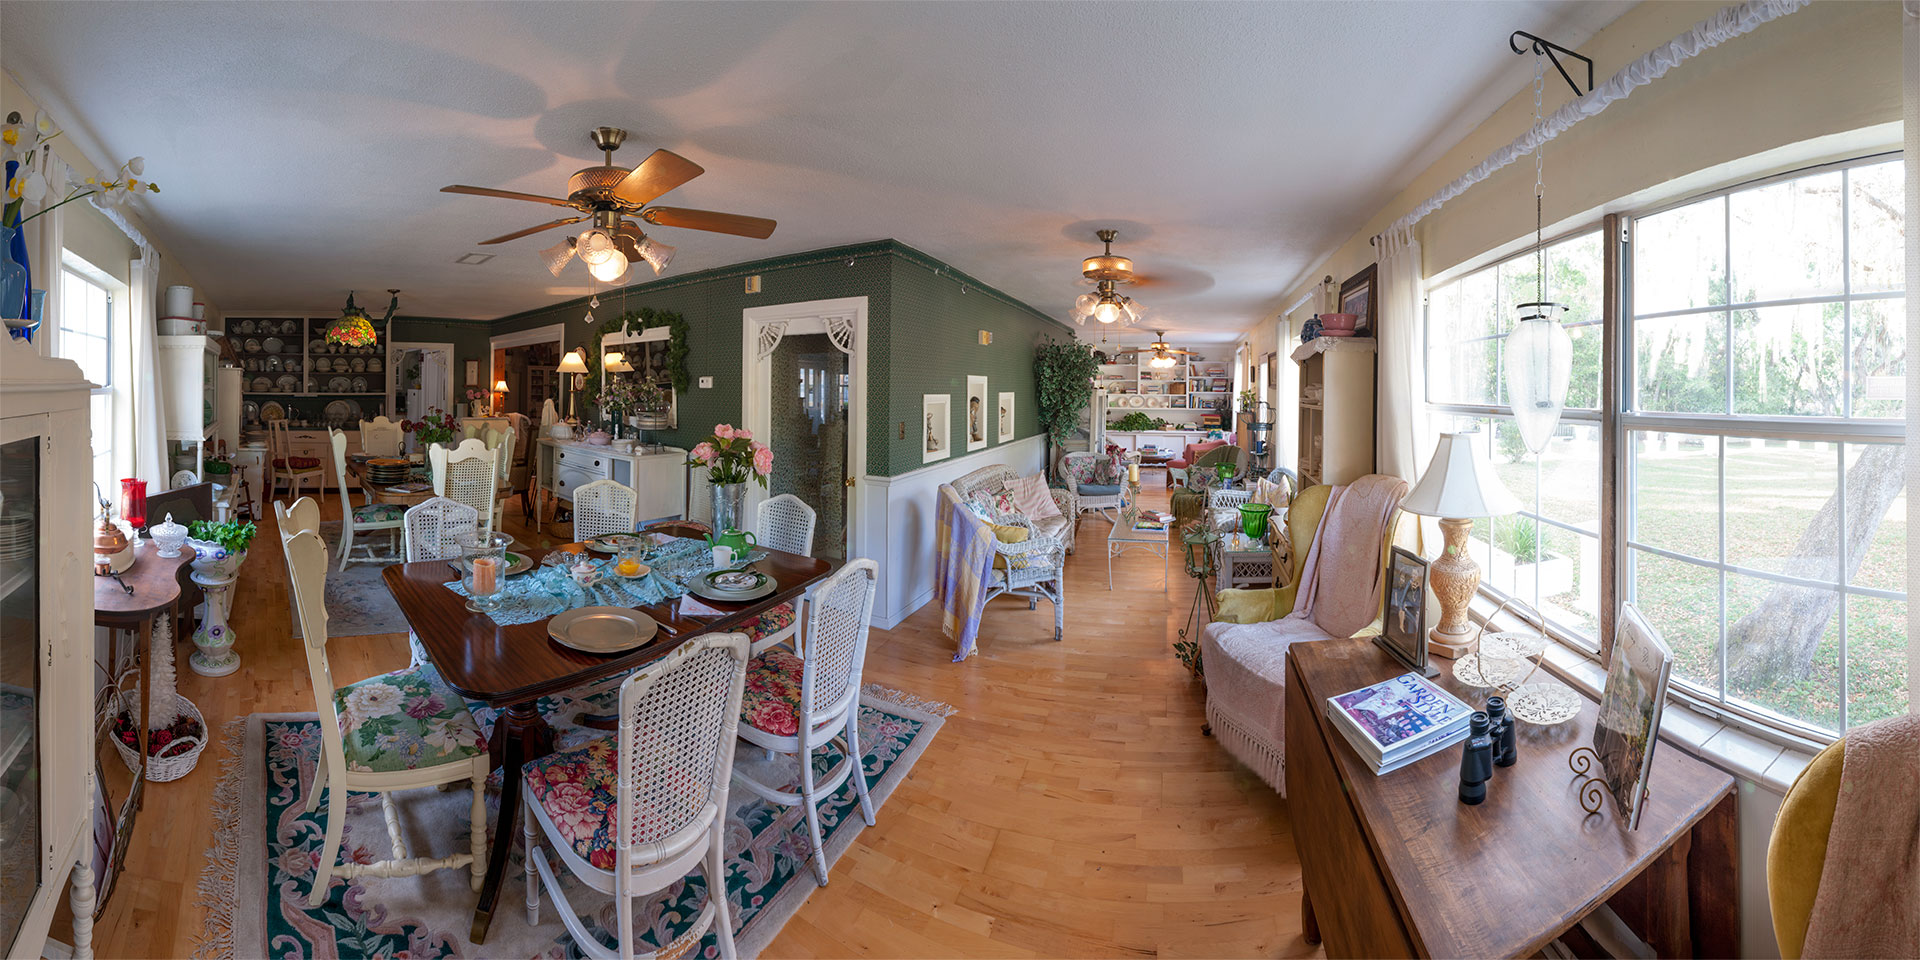 Breakfast-Room, The Lakehouse, Inverness, Florida, USA